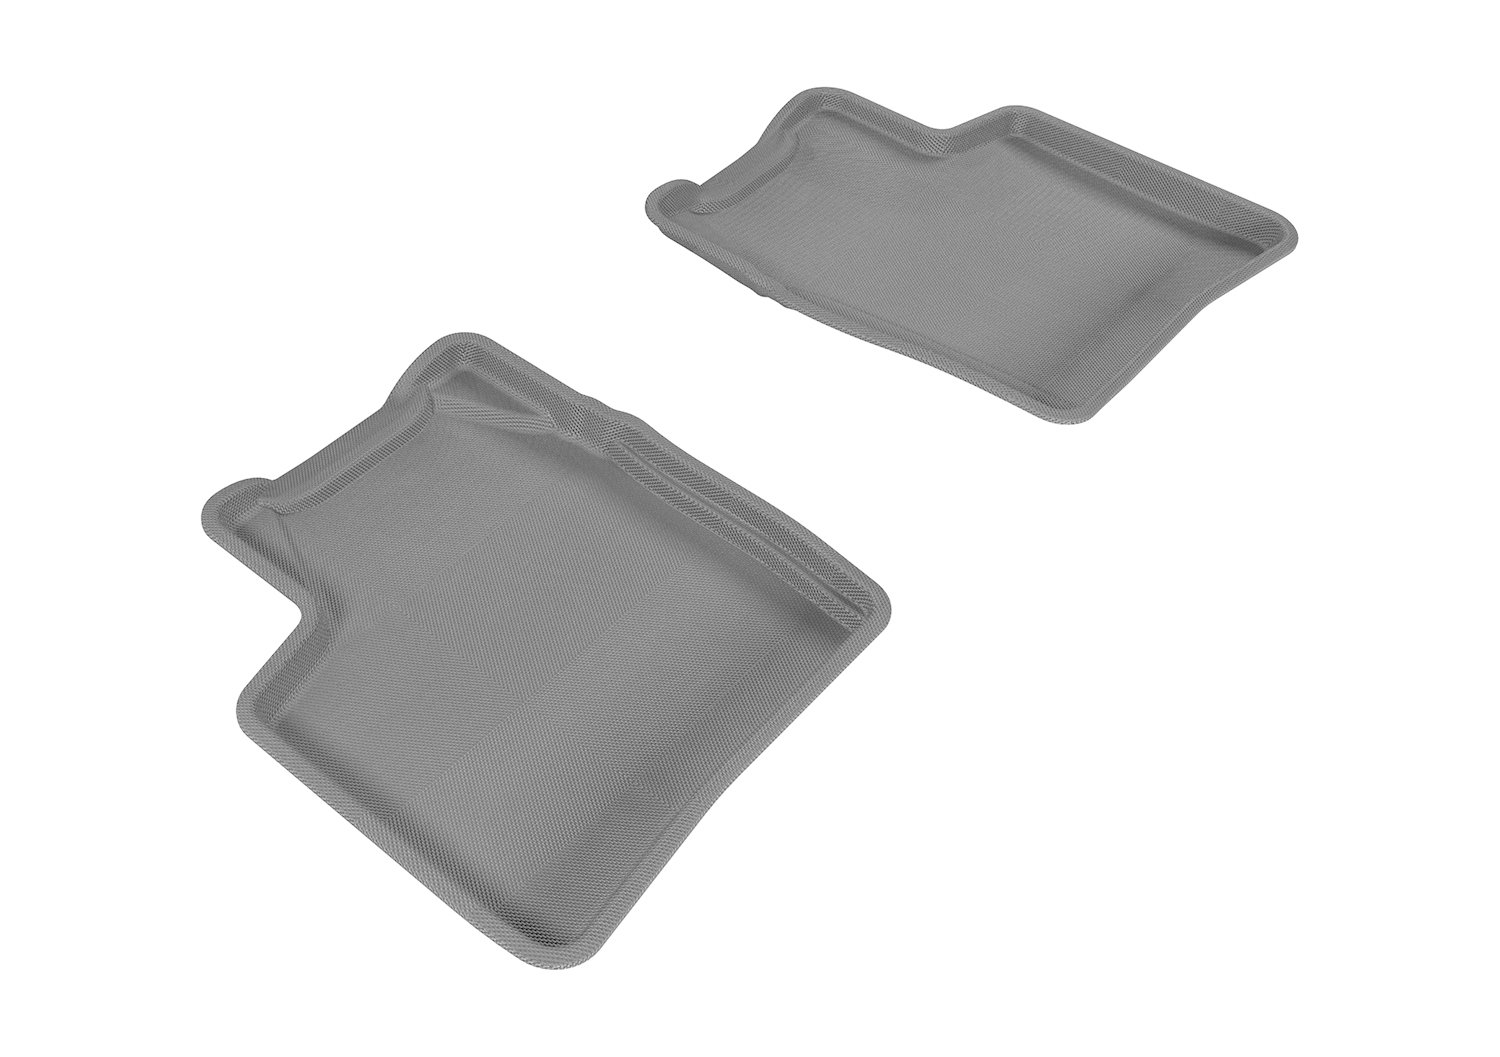 Tan 3D MAXpider Second Row Custom Fit All-Weather Floor Mat for Select Toyota Prius Models L1TY14521502 Kagu Rubber